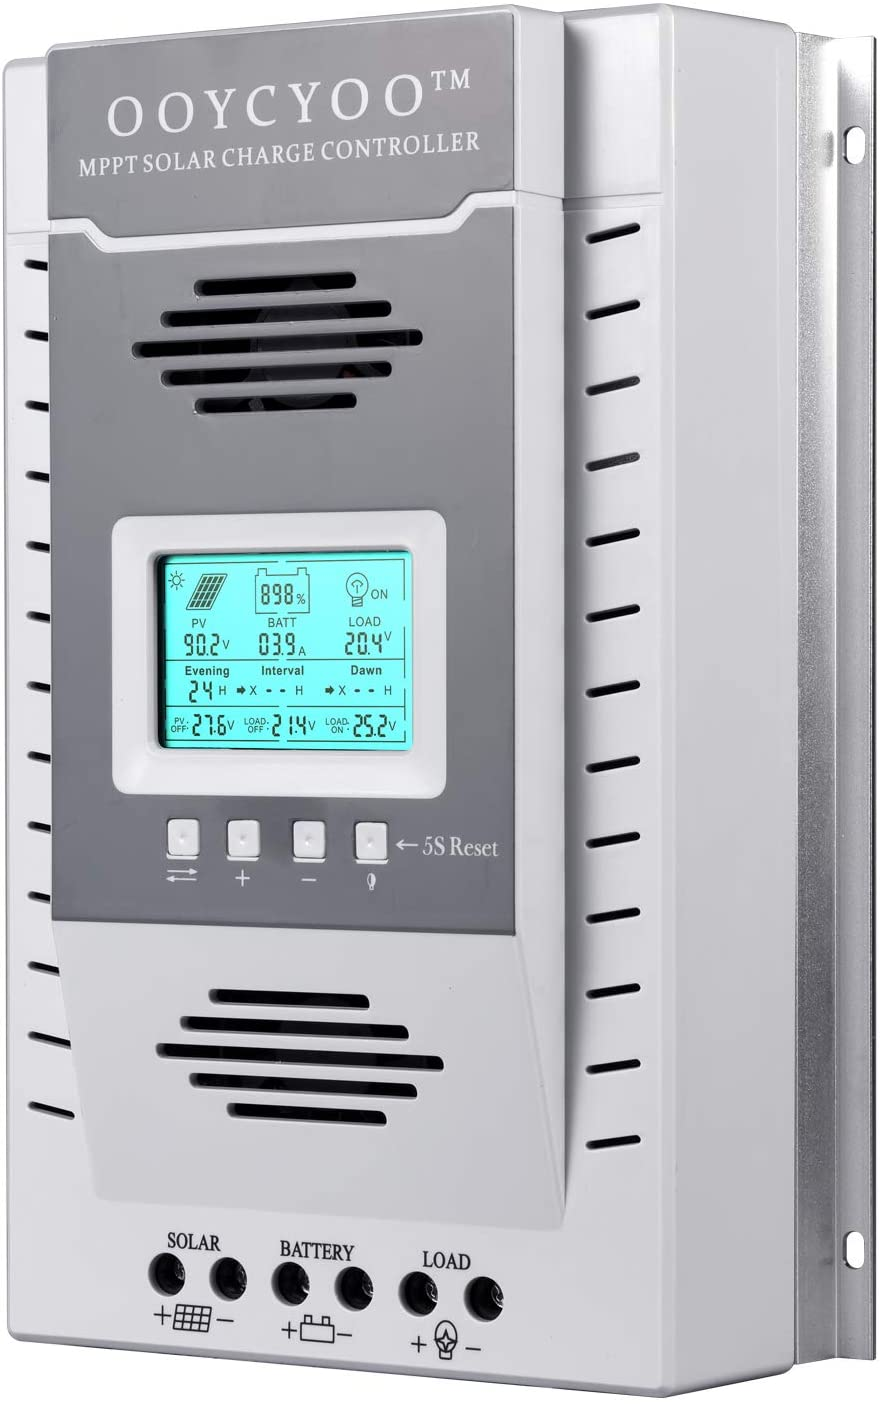 100Amp MPPT Solar Controller 100V Input Tracker for Lithium Iron Phosphate LiFePO4 (Lead Acid AGM) Charger, Solar Panel Maximum Input 1300W/2600W (12V/24V) Automatic (K100A)